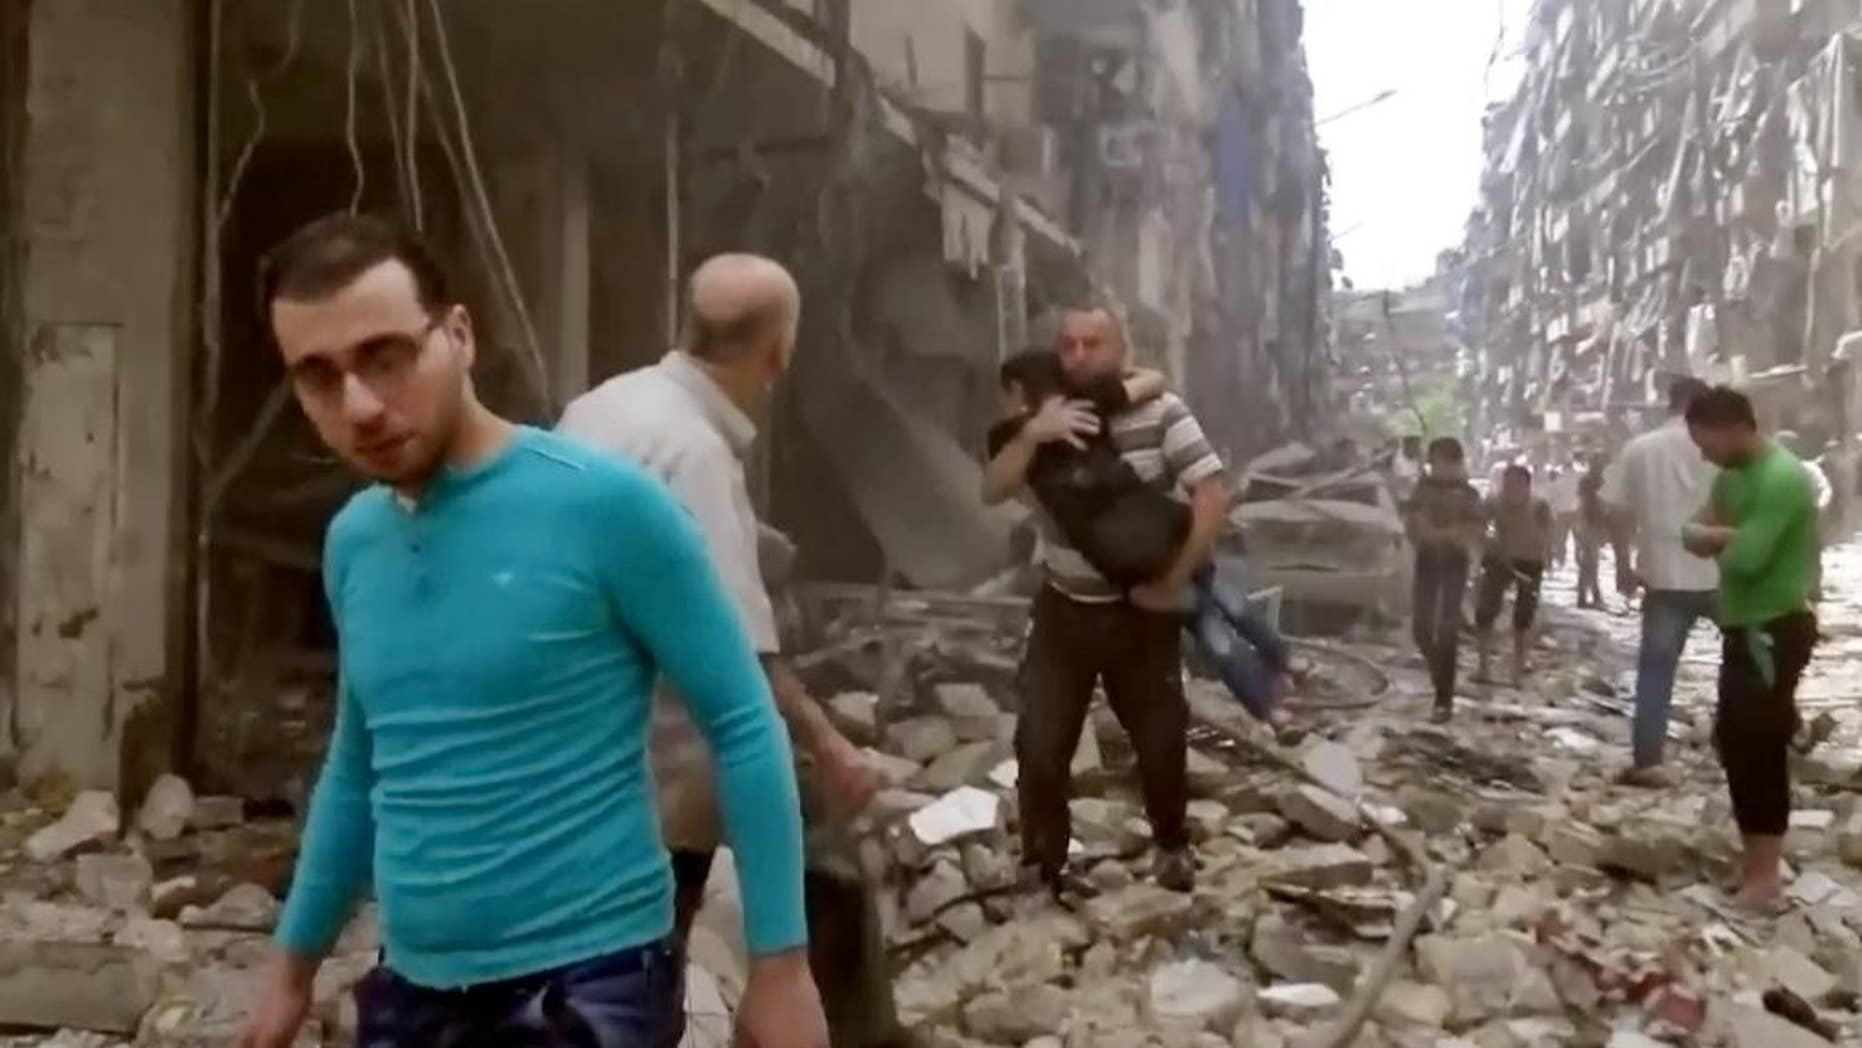 FILE - In this Thursday, April 28, 2016 image made from video and posted online from Validated UGC, a man carries a child after airstrikes hit Aleppo, Syria. A fragile cease-fire in the northern Syrian city of Aleppo has been extended for 72 hours, Russia said, as the Islamic State group battled other militant factions near the city on Saturday, May 7, 2016.  (Validated UGC via AP video, File)